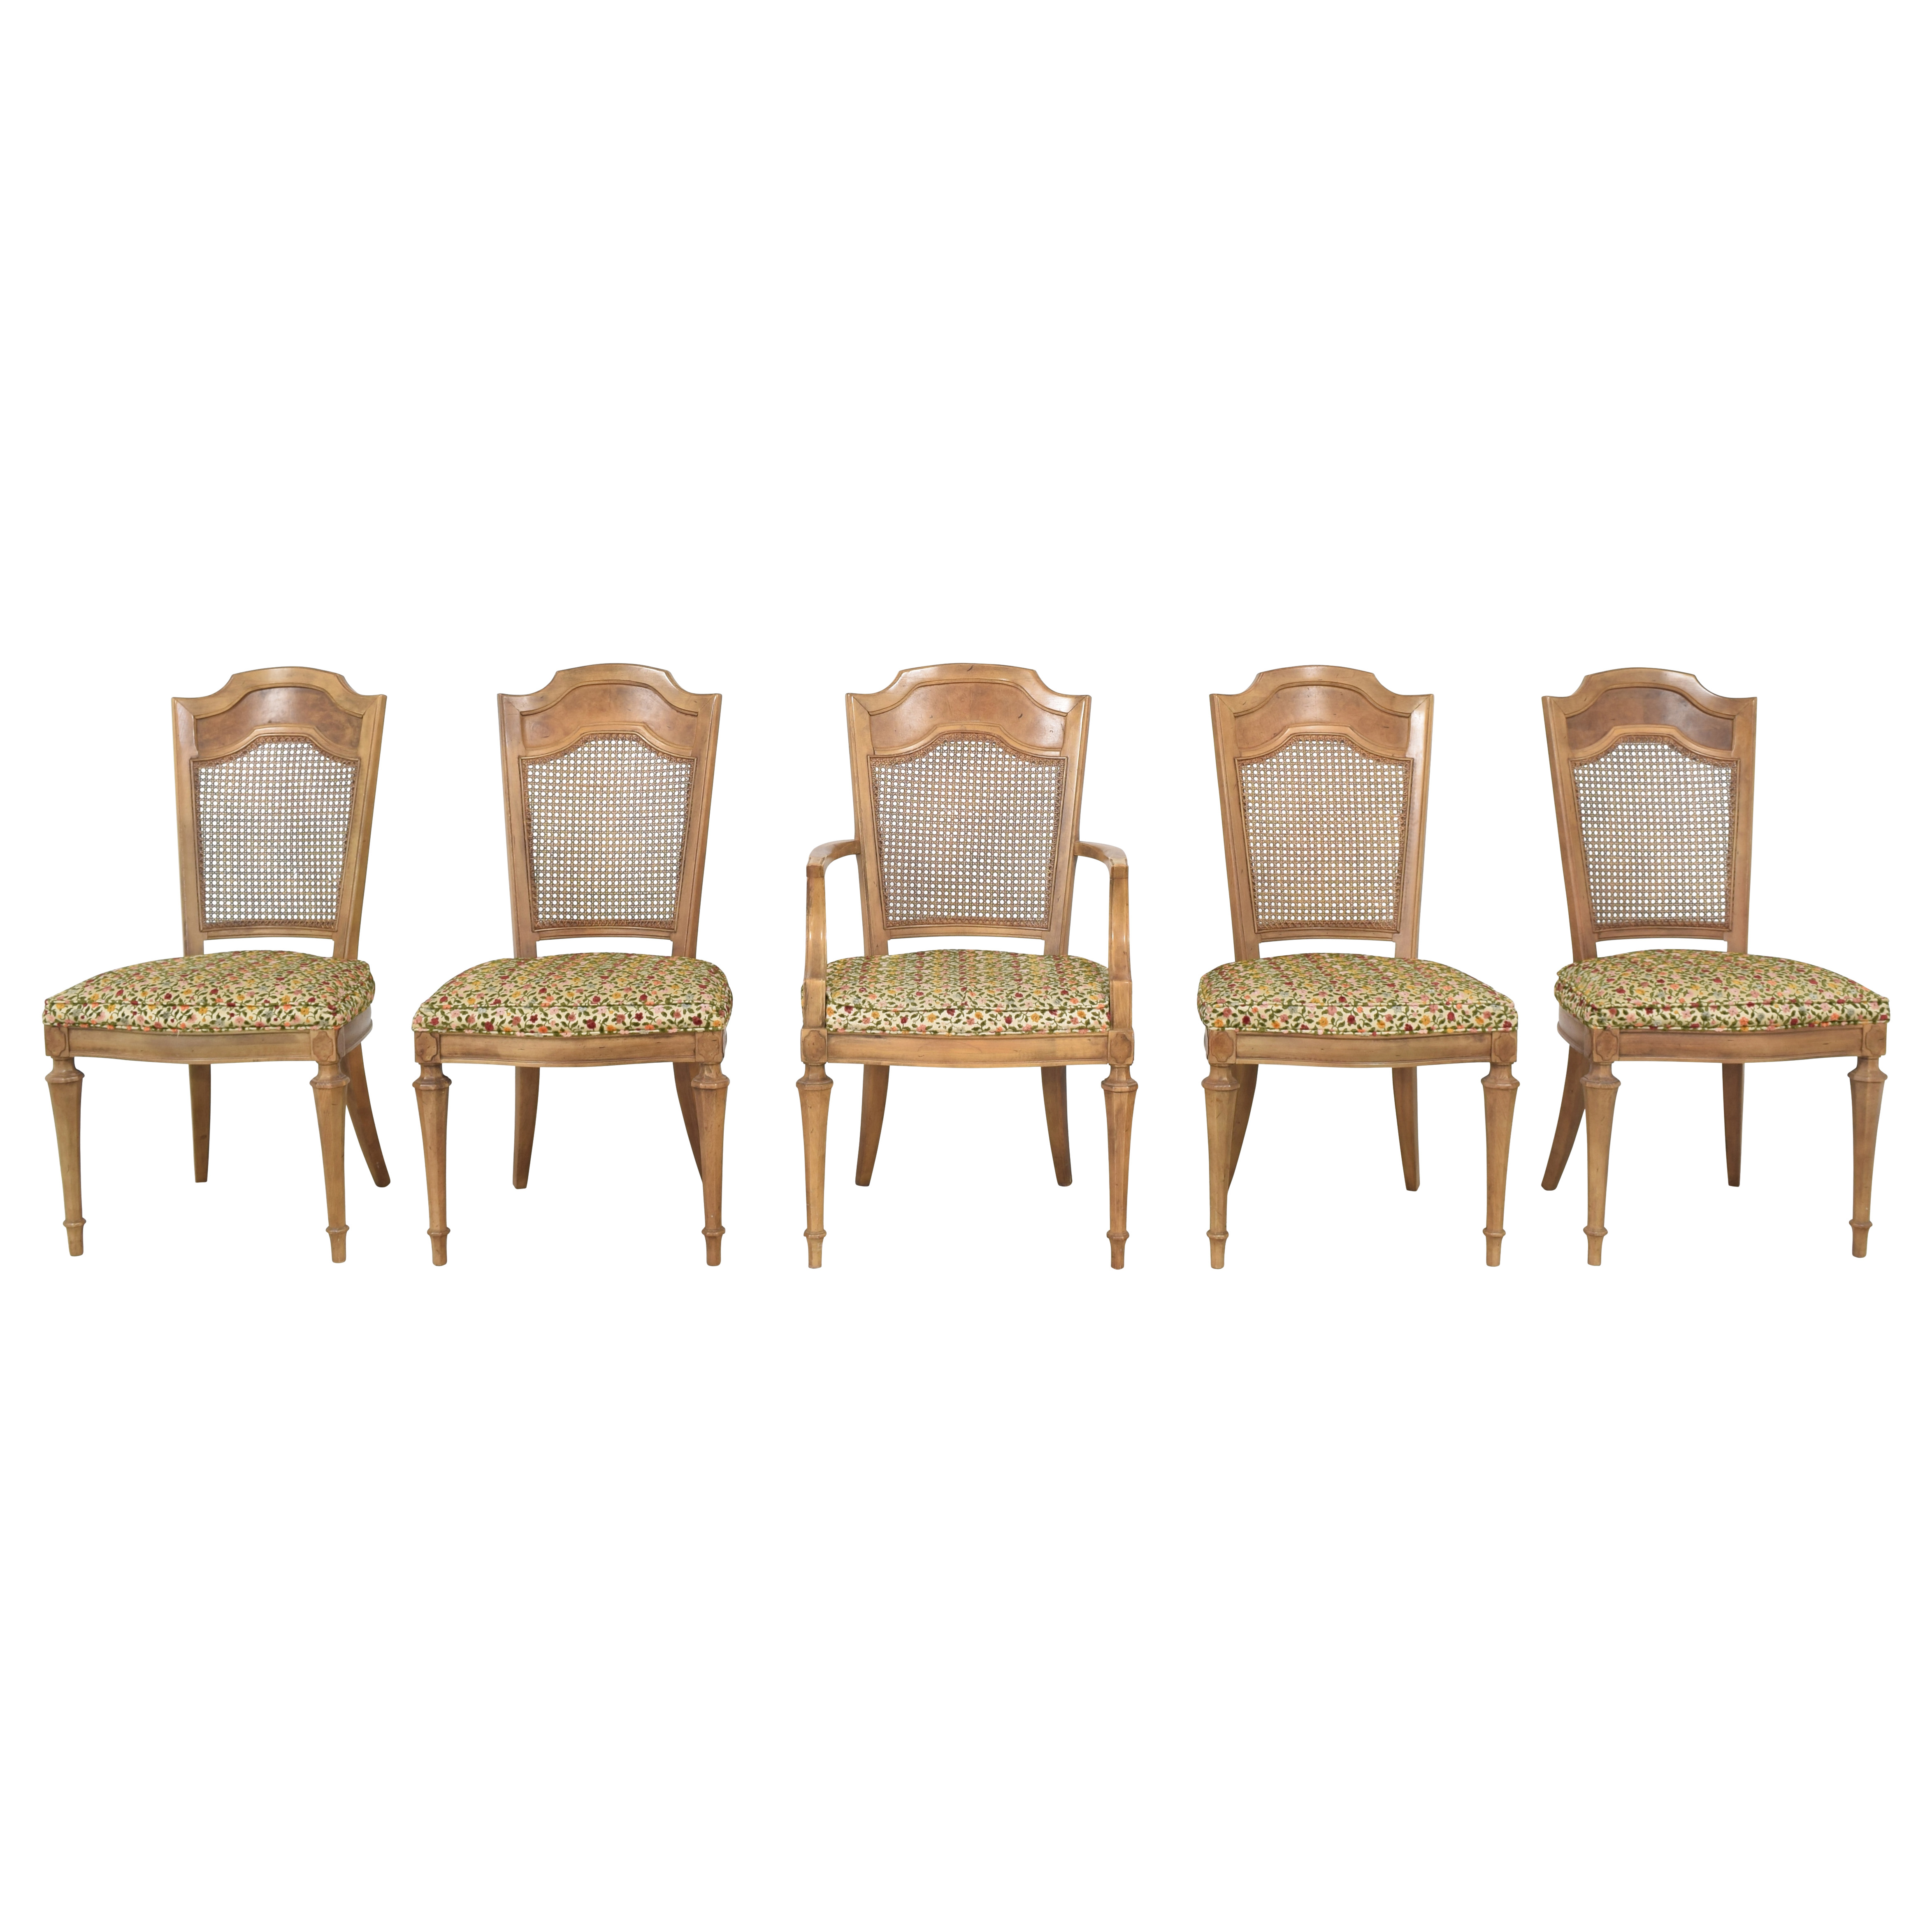 Upholstered Cane Back Dining Chairs on sale